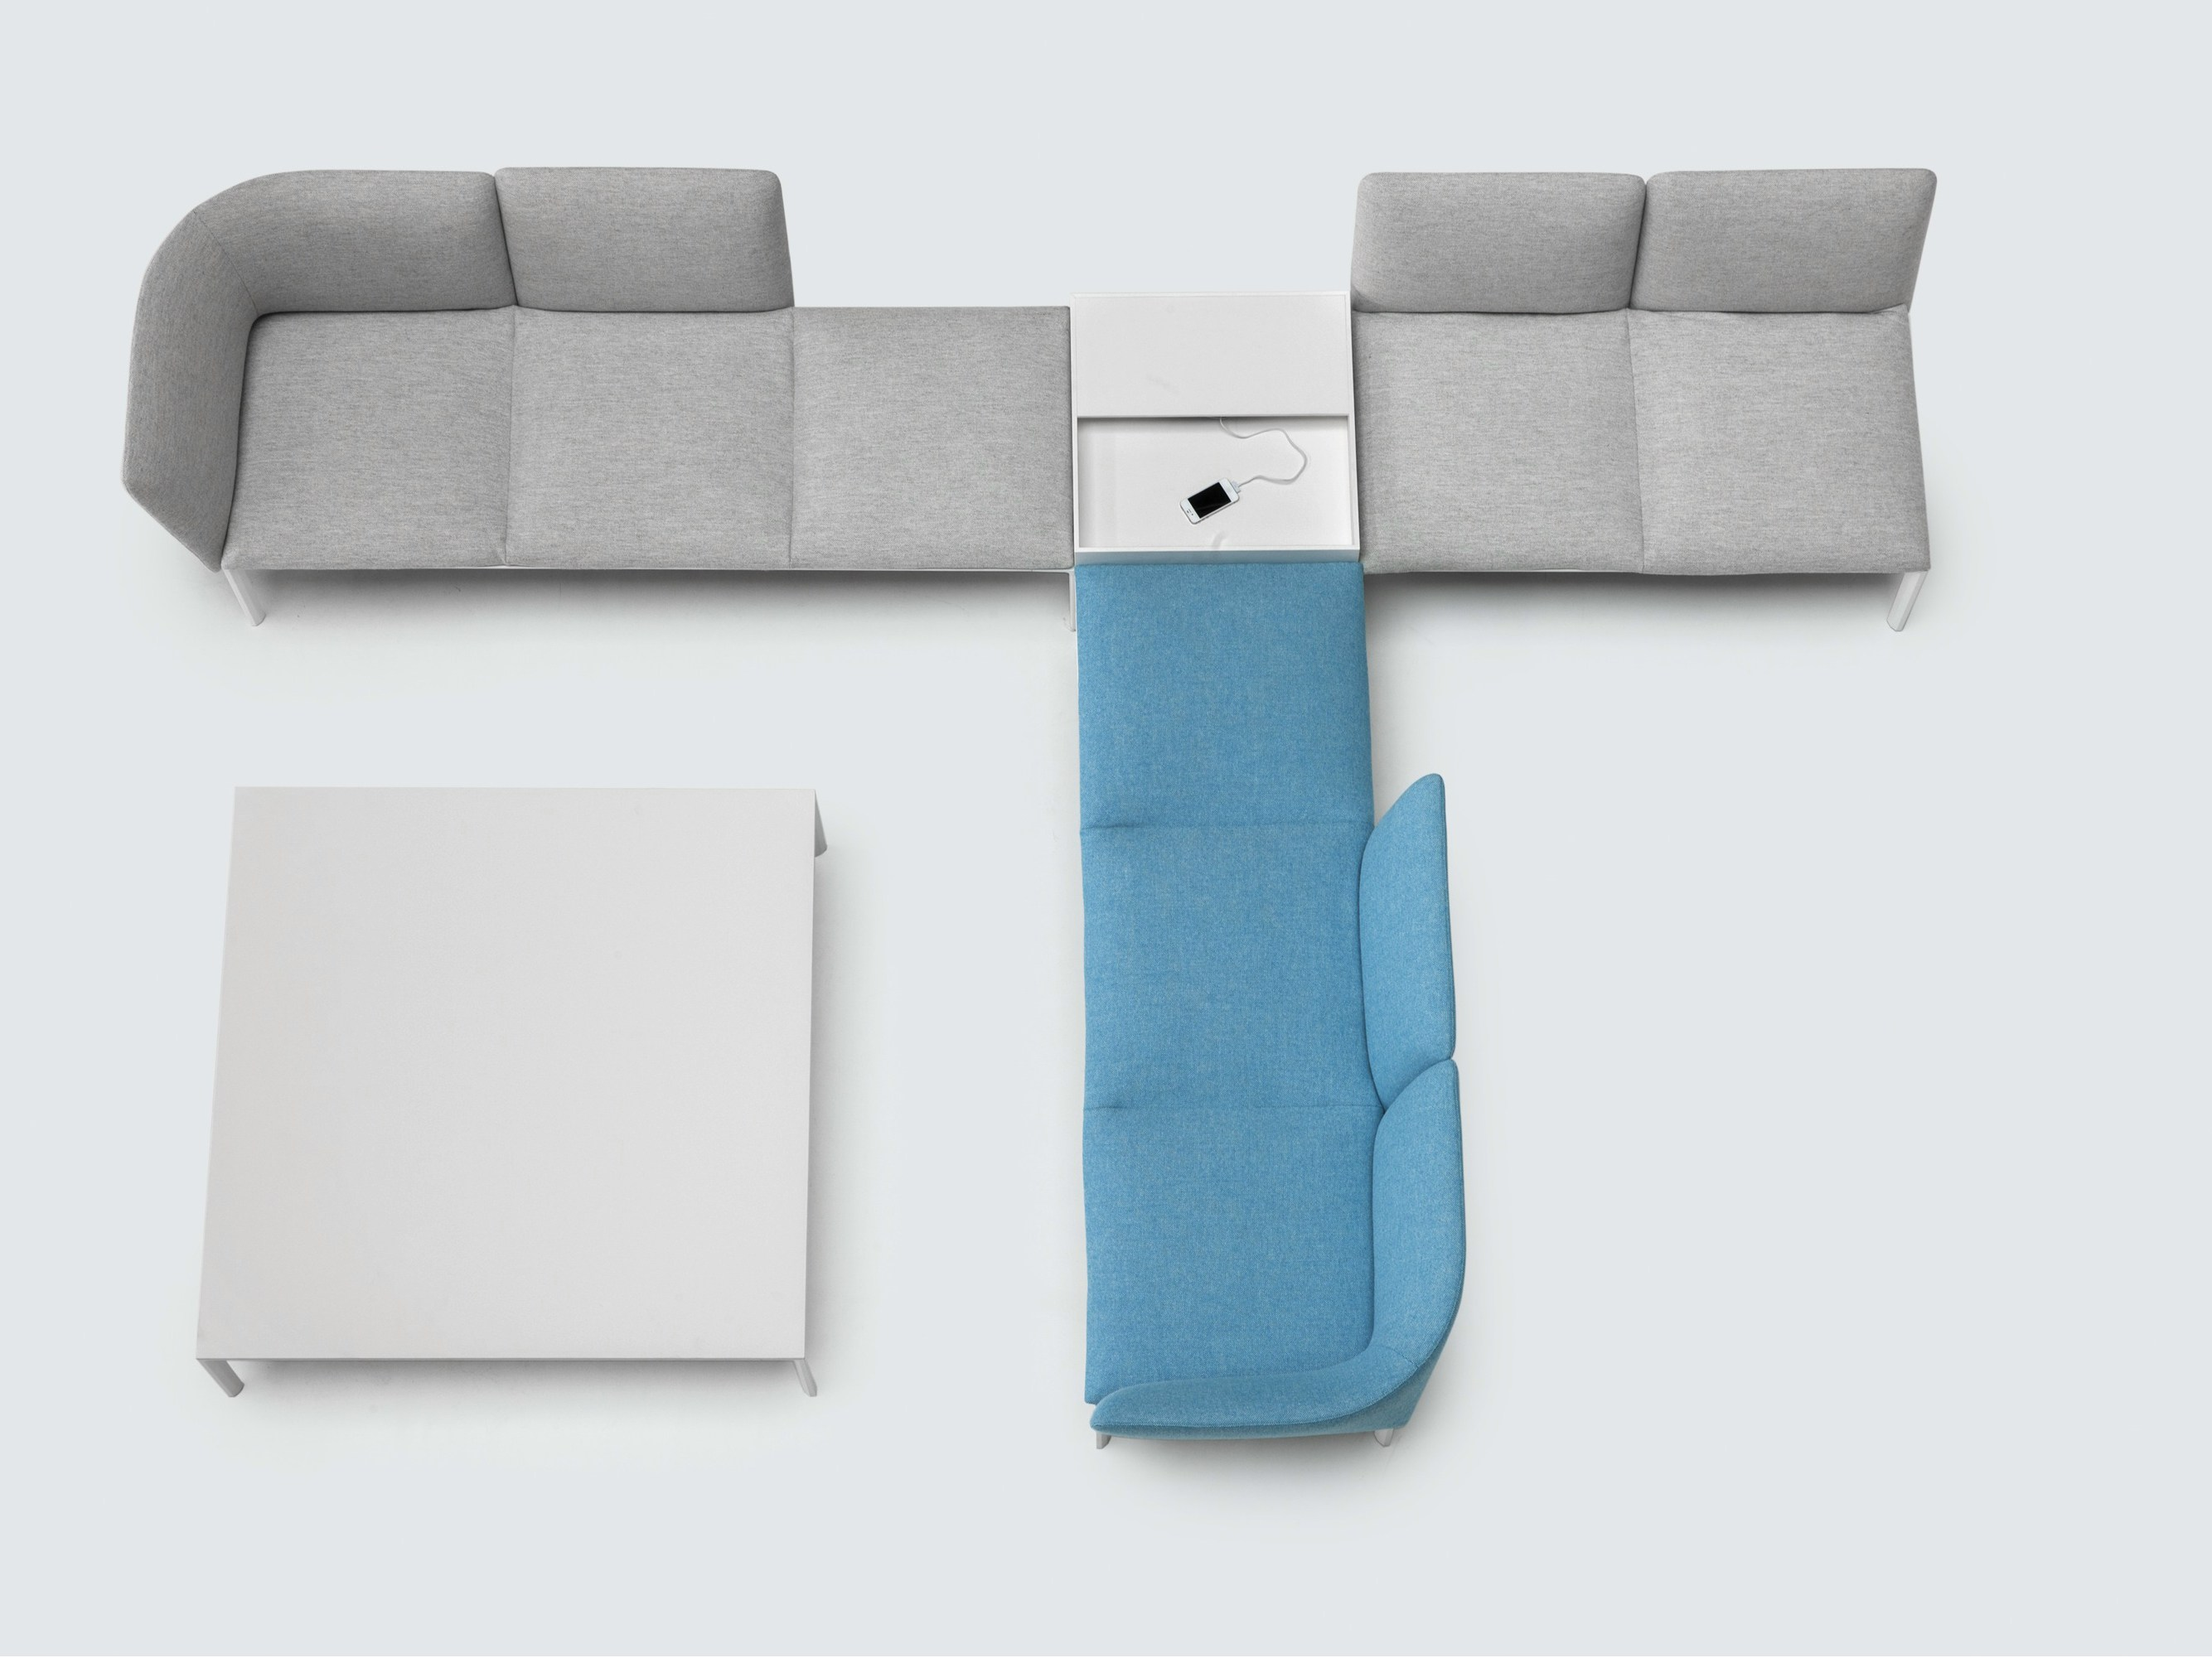 Couchtisch Palma Add Couchtisch By Lapalma Design Francesco Rota